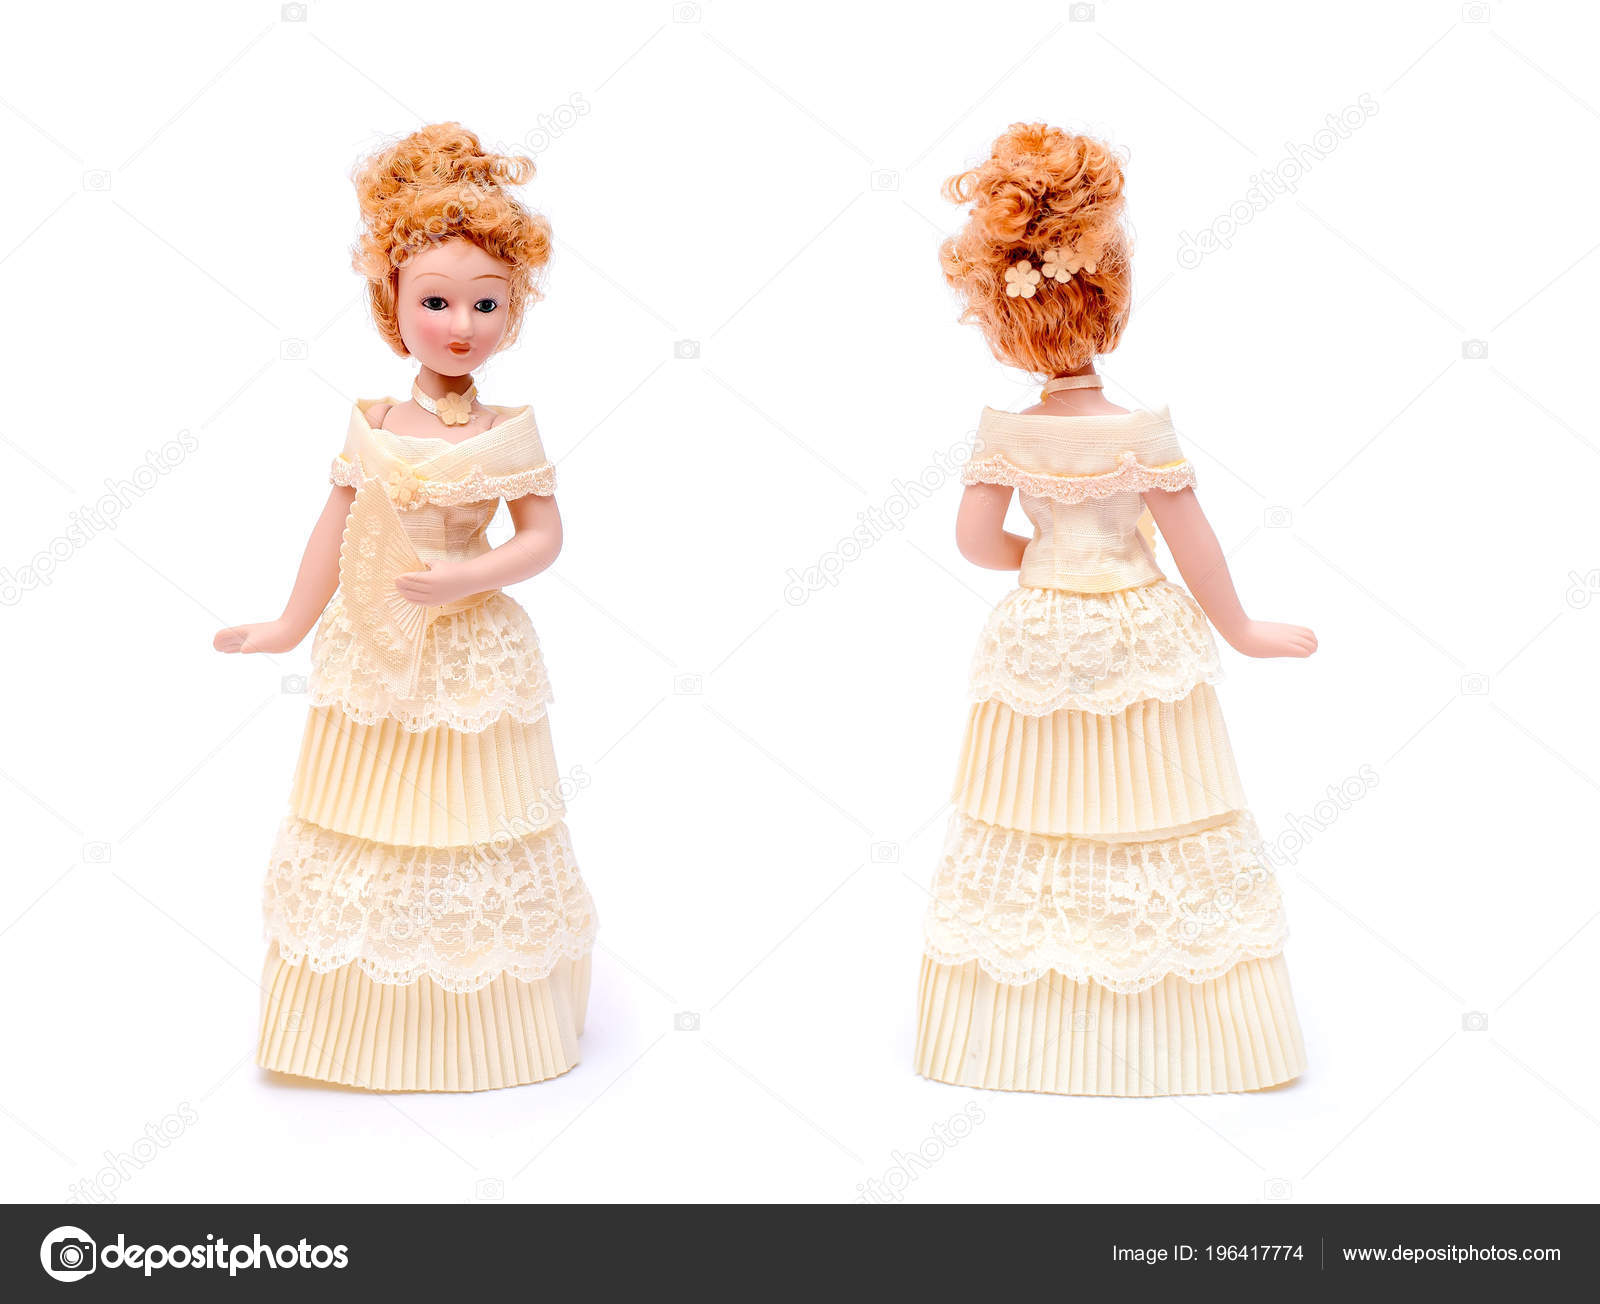 Beautiful Porcelain Doll Red Curly Hair Hairstyle Beige Vintage Dress — Stock Photo